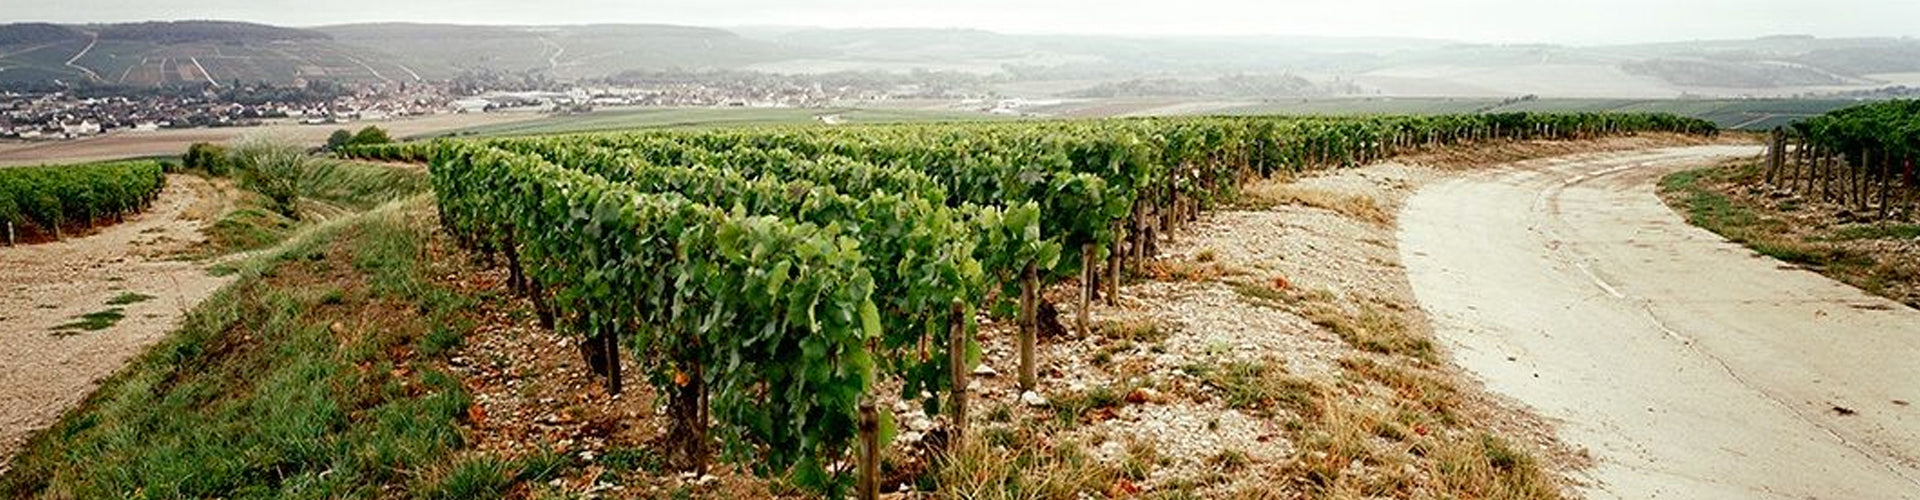 Chablis Vineyards in Burgundy, France